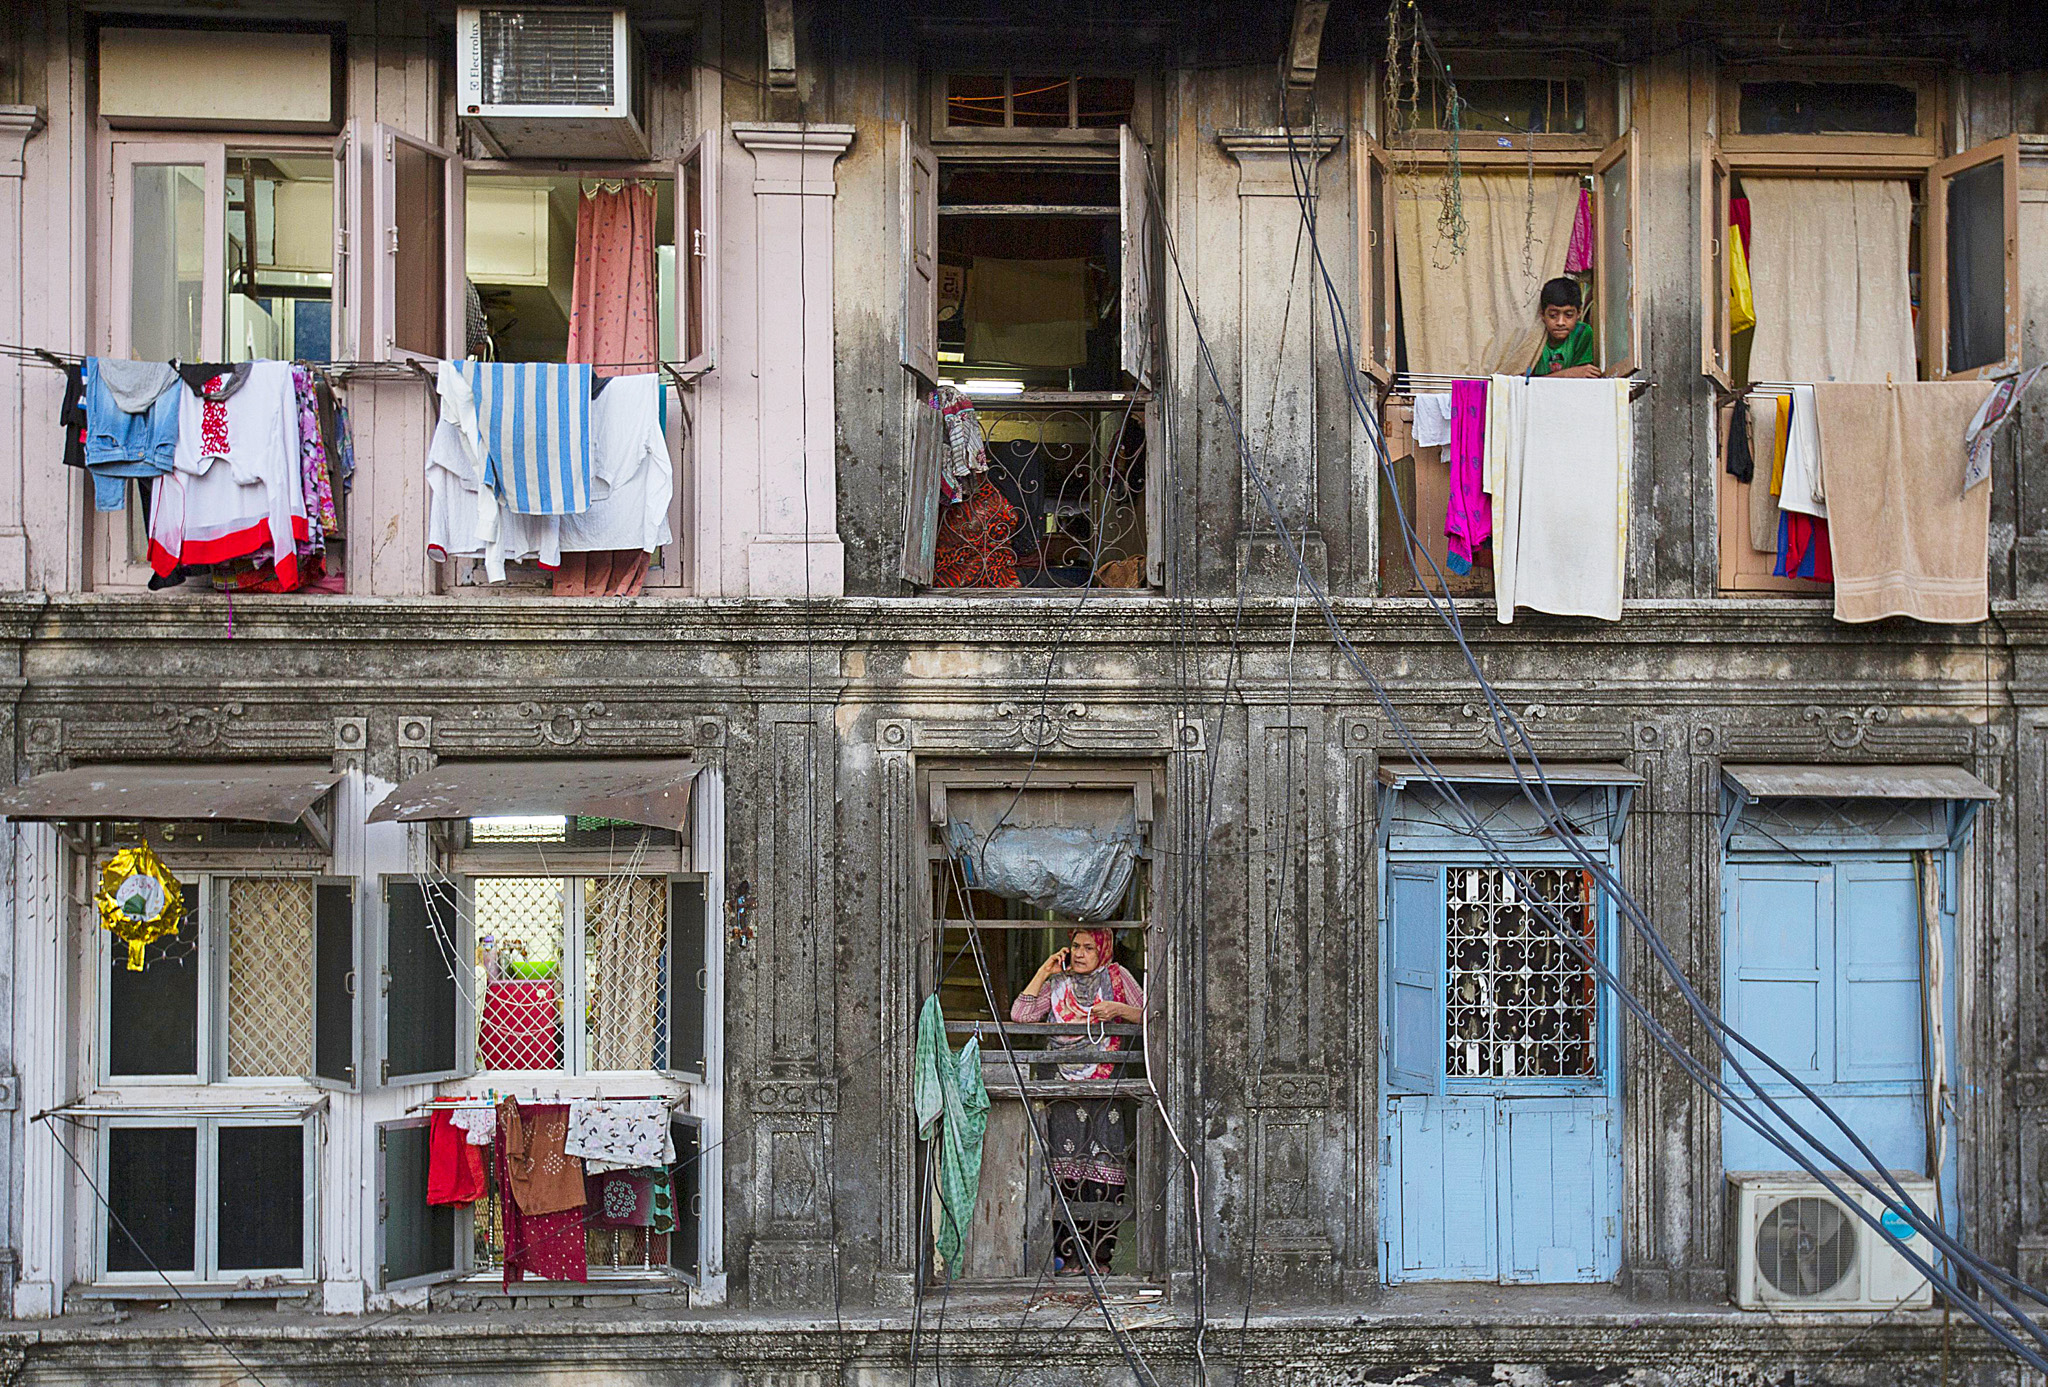 "Wider Image: Renting in Mumbai Per Square Foot...Residents look out of windows of an apartment in Mumbai March 15, 2015. The cost for buying a 200 square feet (18 square meters) one-bedroom apartment in this building is around 25,000 Indian rupees per square feet ($ 400) or 5,000,000 Indian rupees ($ 80,000). The rent for an apartment in the same building is around 12,000 Indian rupees ($ 190) per month. REUTERS/Danish Siddiqui  TPX IMAGES OF THE DAY PICTURE 05 OF 22 FOR WIDER IMAGE STORY ""RENTING IN MUMBAI PER SQUARE FOOT"" SEARCH ""RENTING SIDDIQUI"" FOR ALL IMAGES"